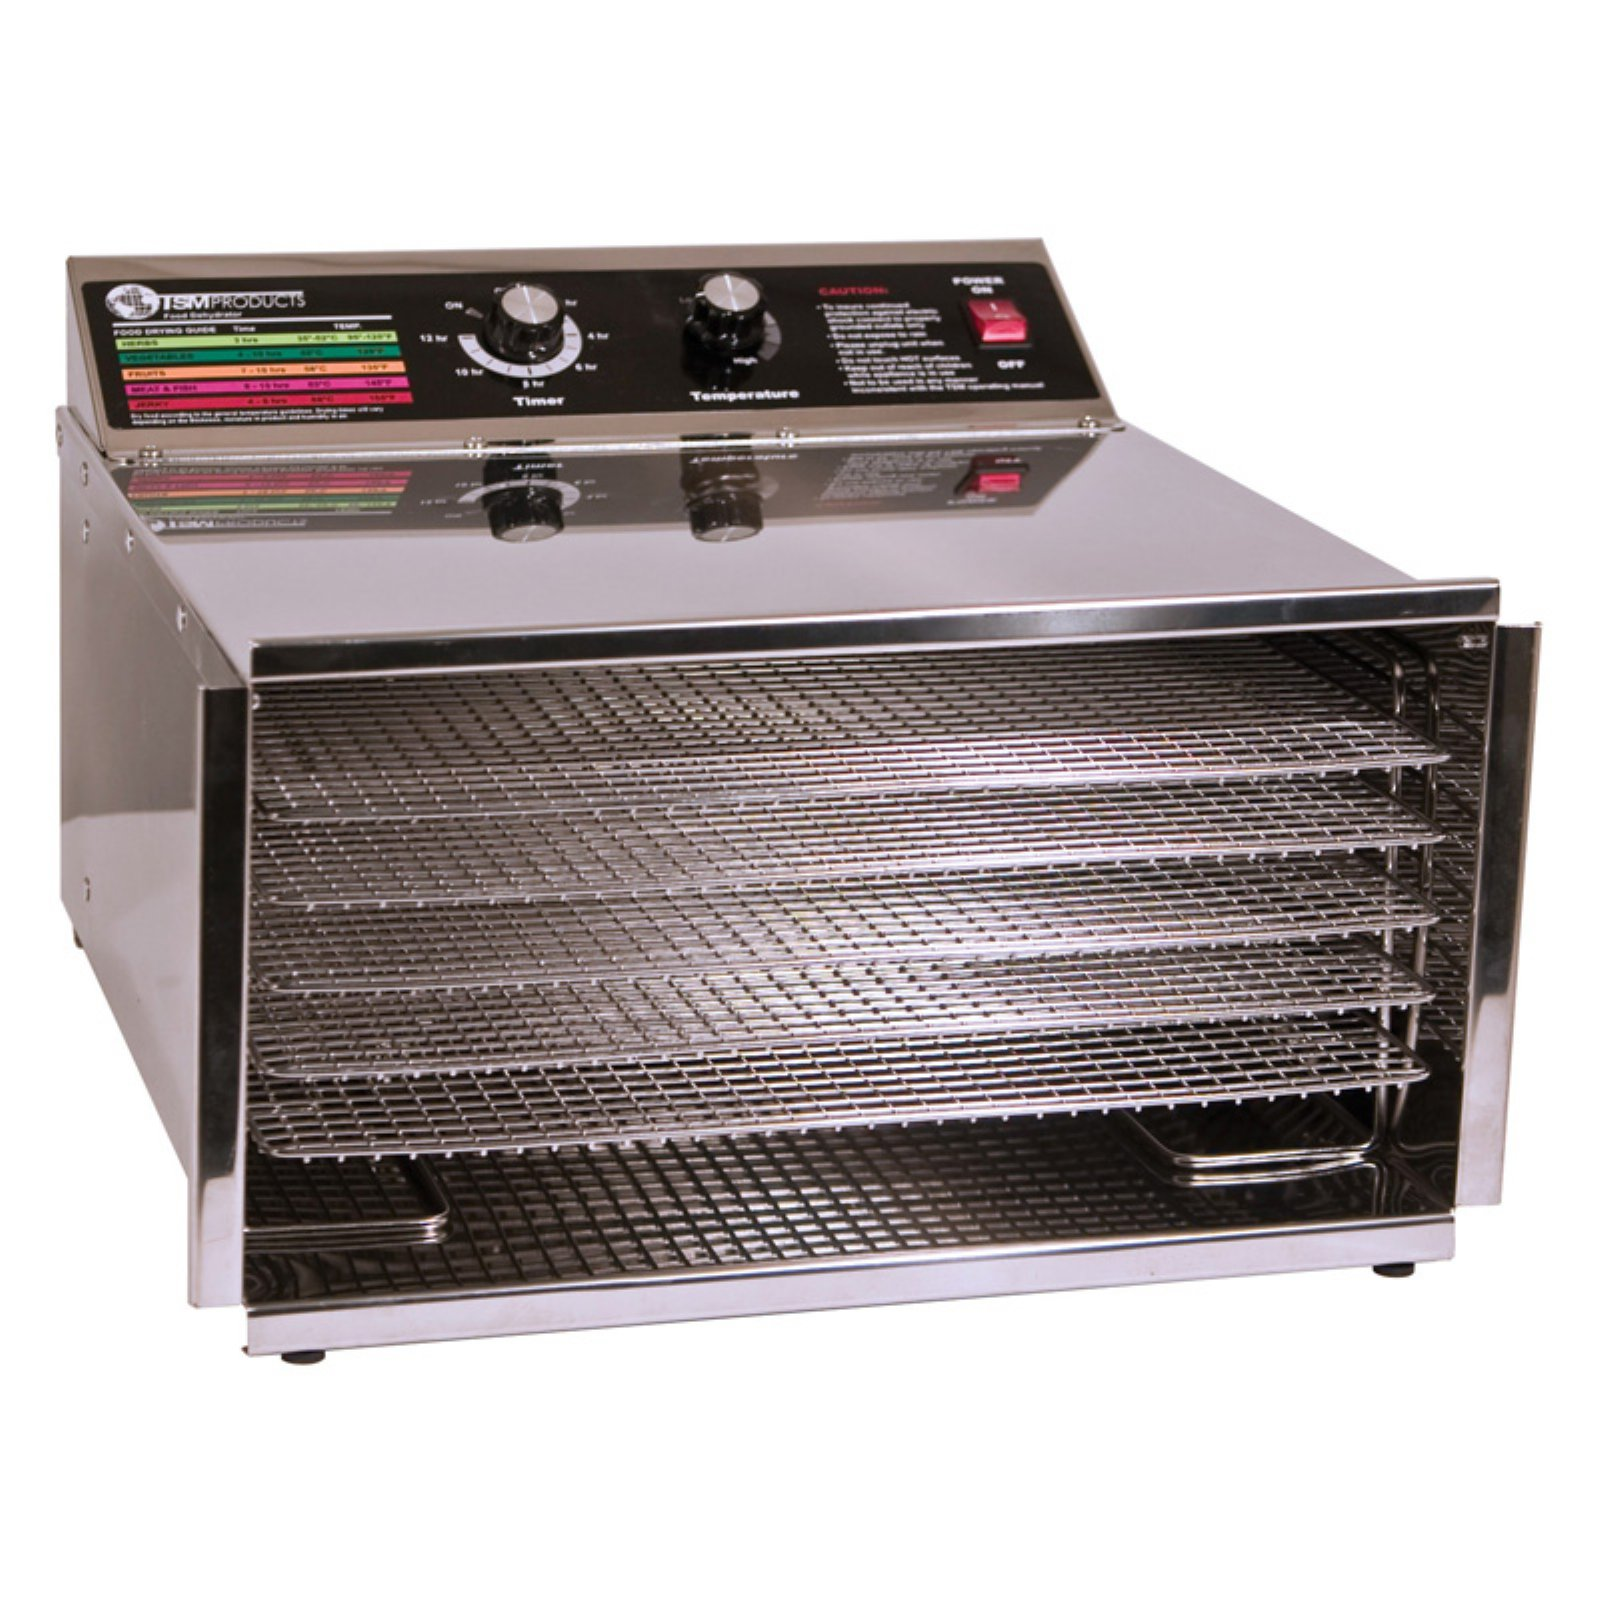 TSM 32603 5 Tray D5 Stainless Steel Dehydrator with Stainless Steel Shelves